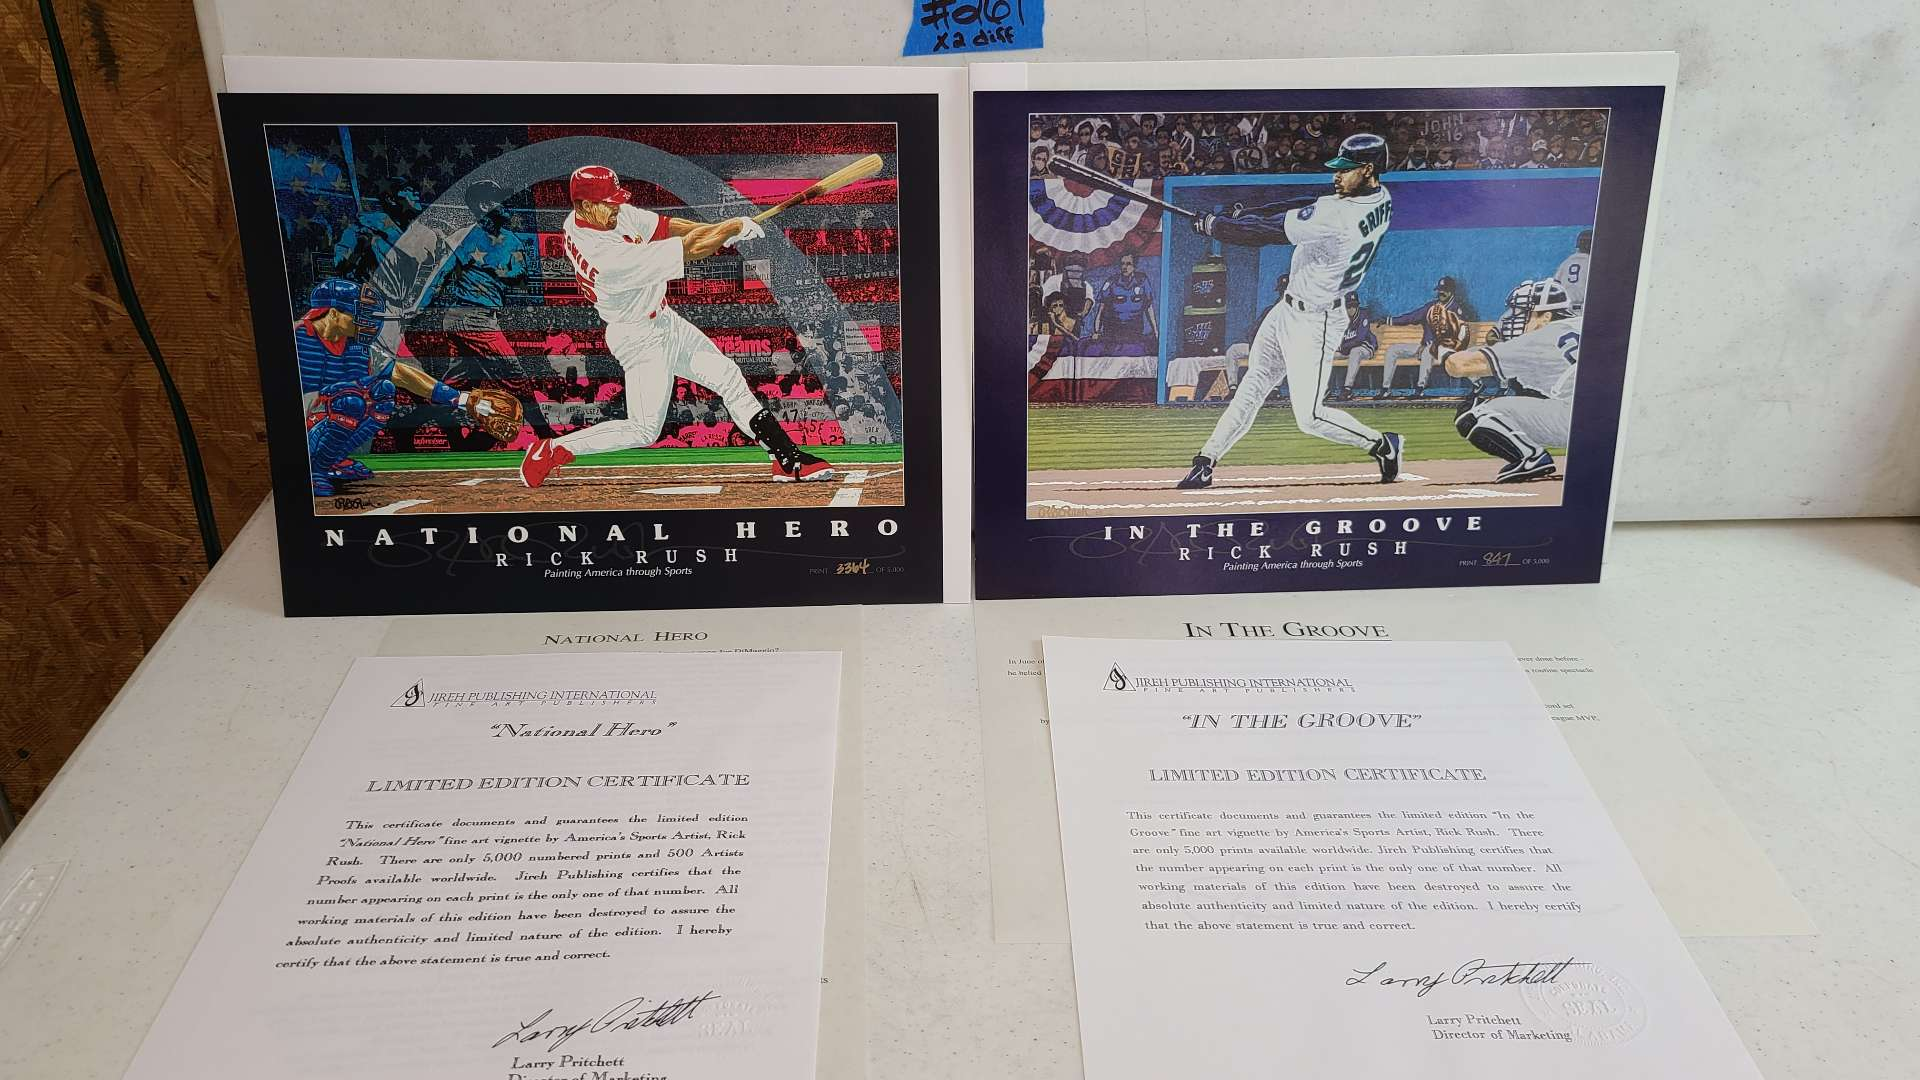 """Lot #261 """"In the Groove"""" and """"National Hero"""" By Rick Rush Limited Edition Signed & Numbered Print"""